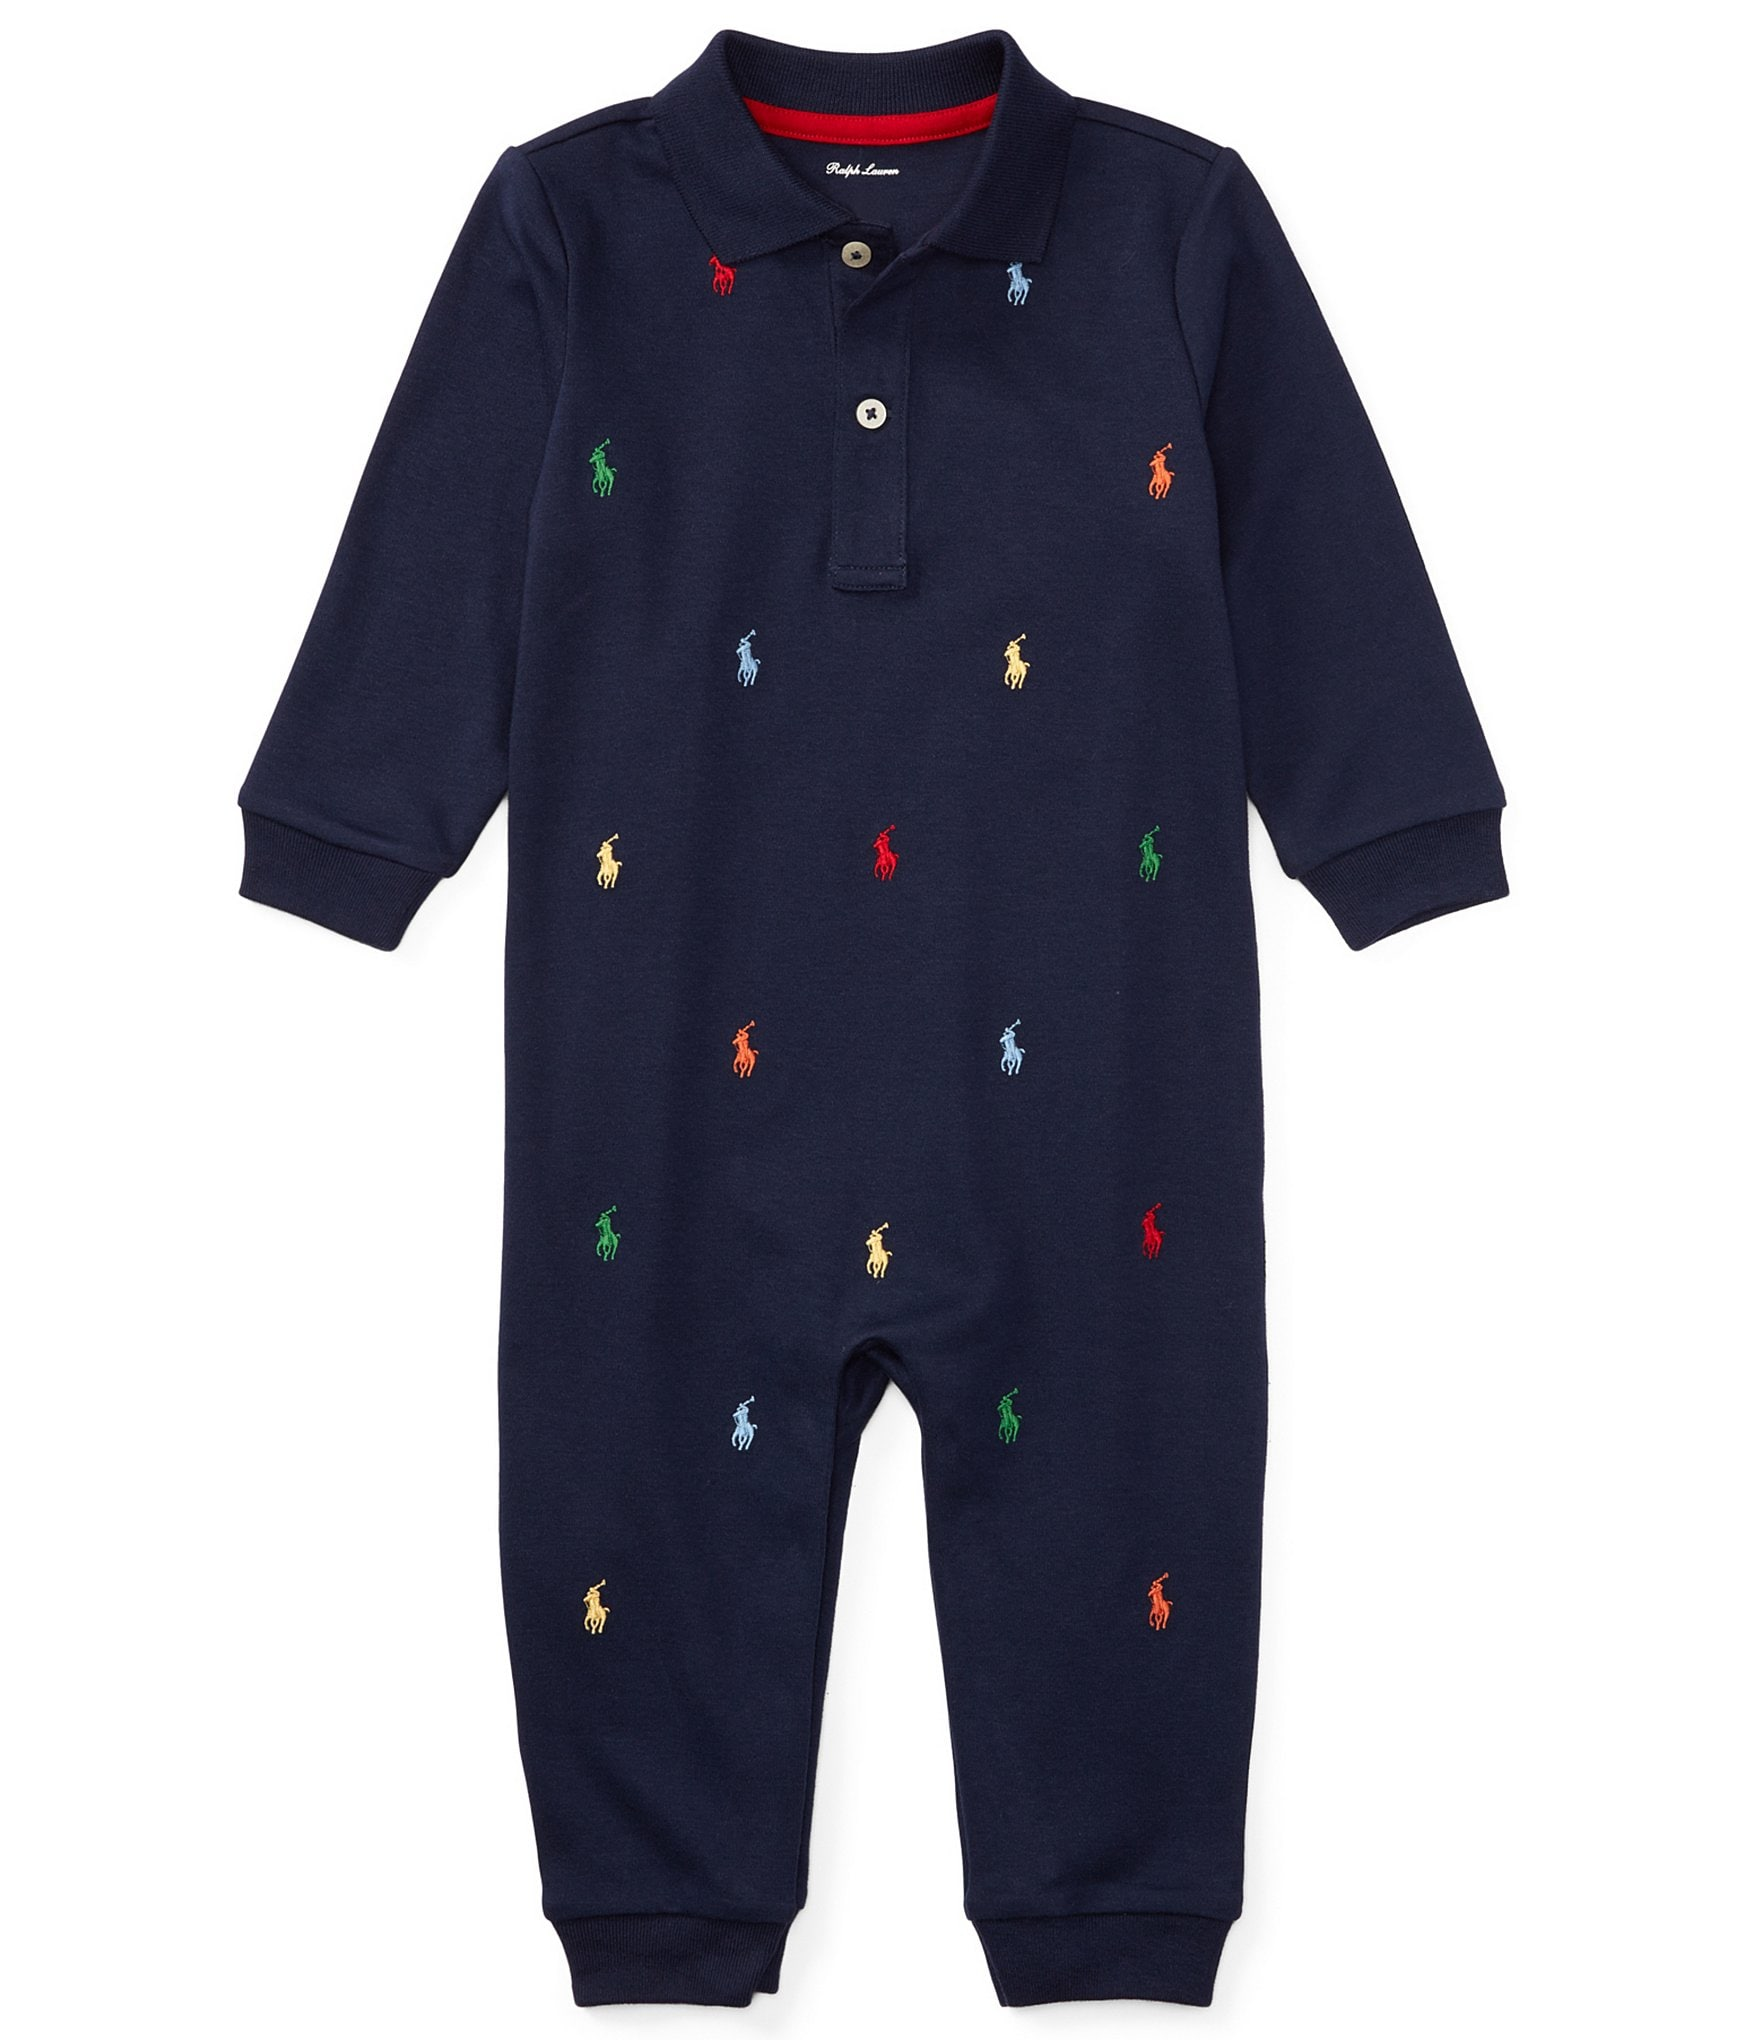 5f0c4fcb8 Ralph Lauren Childrenswear Baby Boys Newborn-12 Months Schiffli-Embroidered  Coverall